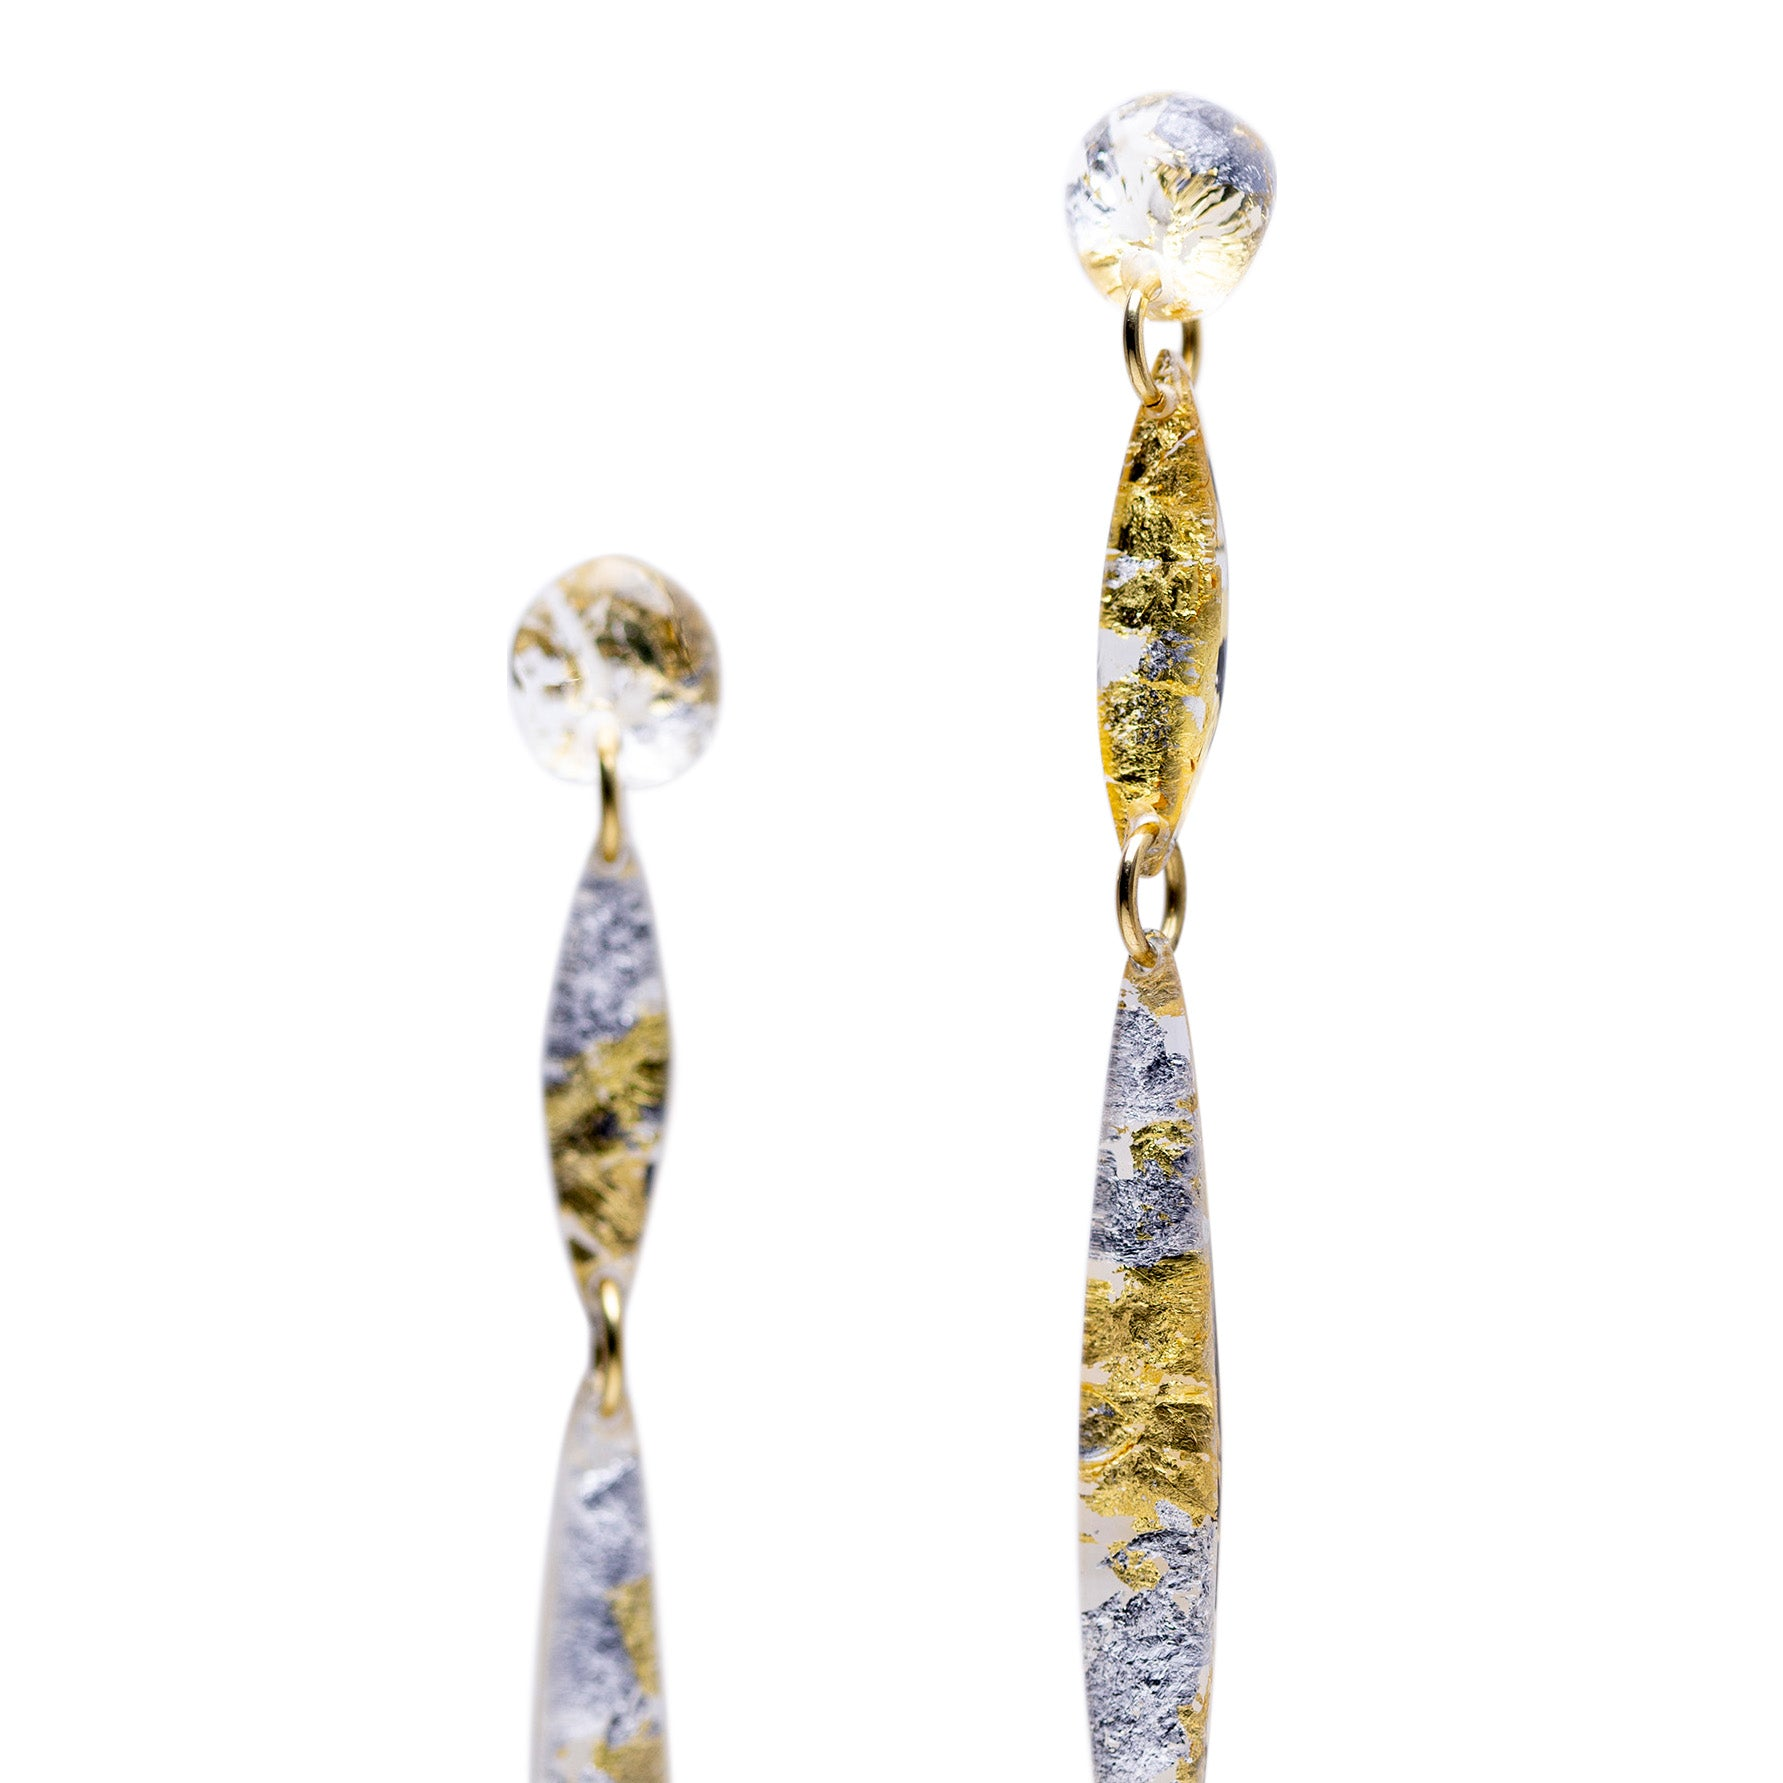 Reem's Dangling Earrings - Silver and Gold/ les boucles de Reem